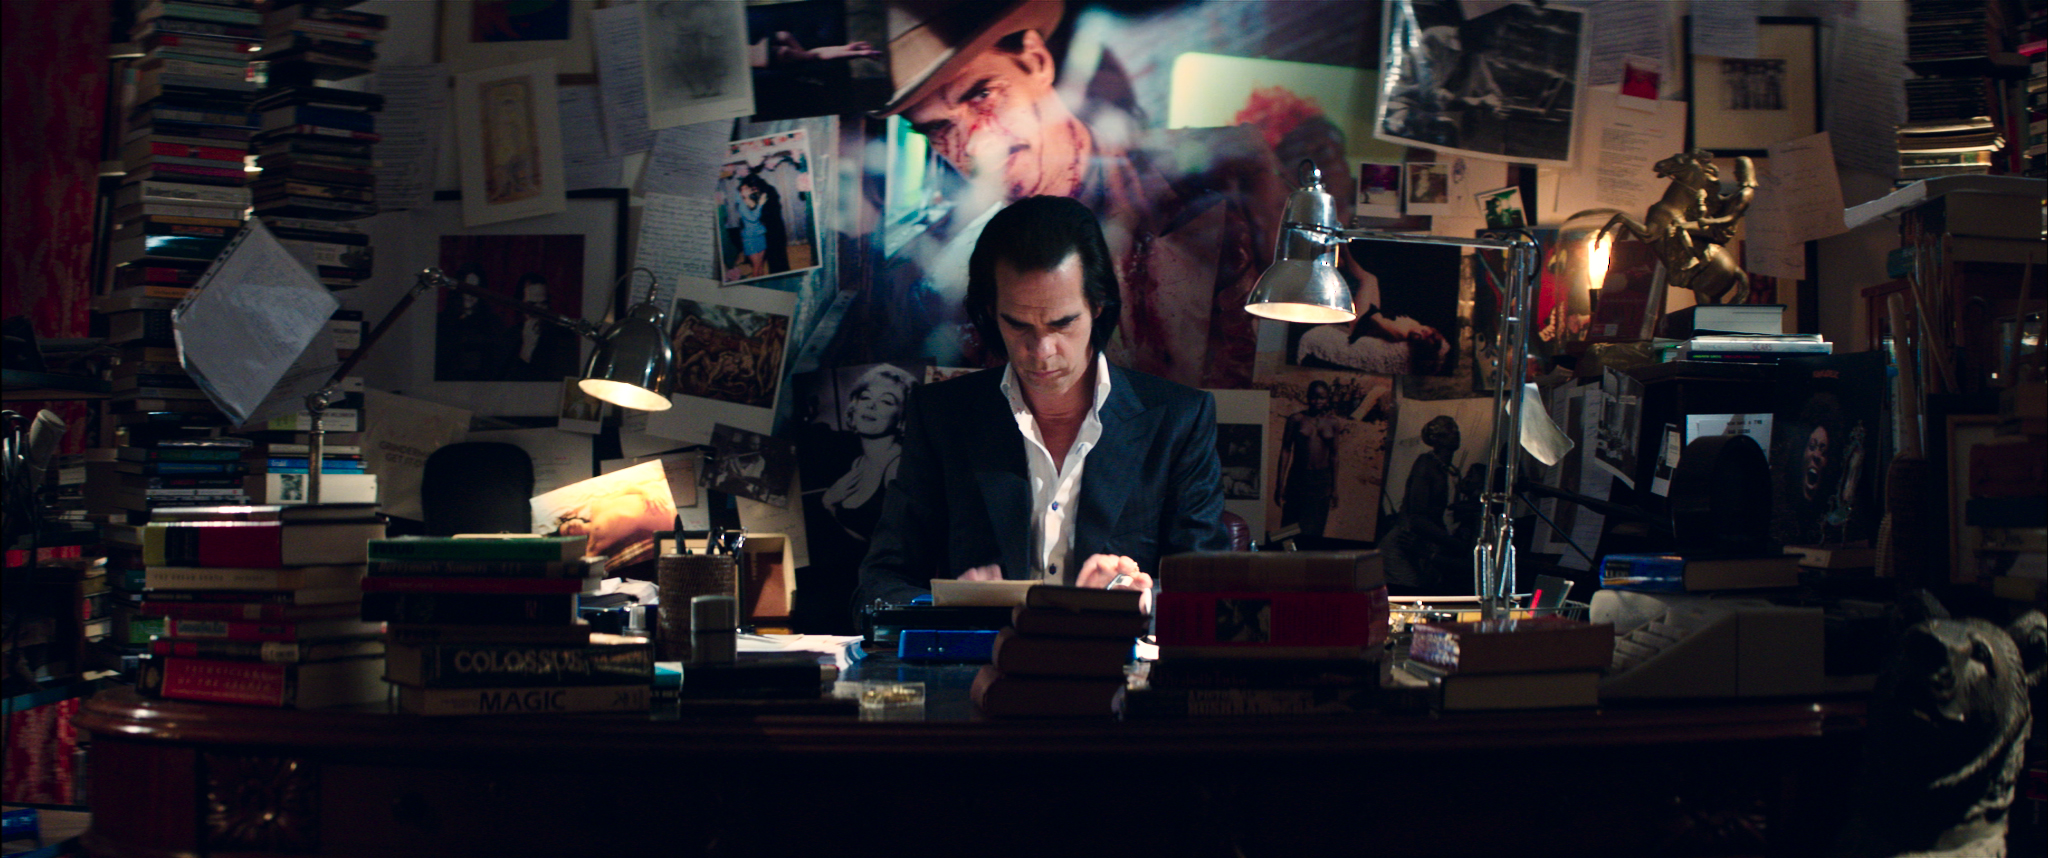 Nick Cave in 20,000 Days on Earth (2014)